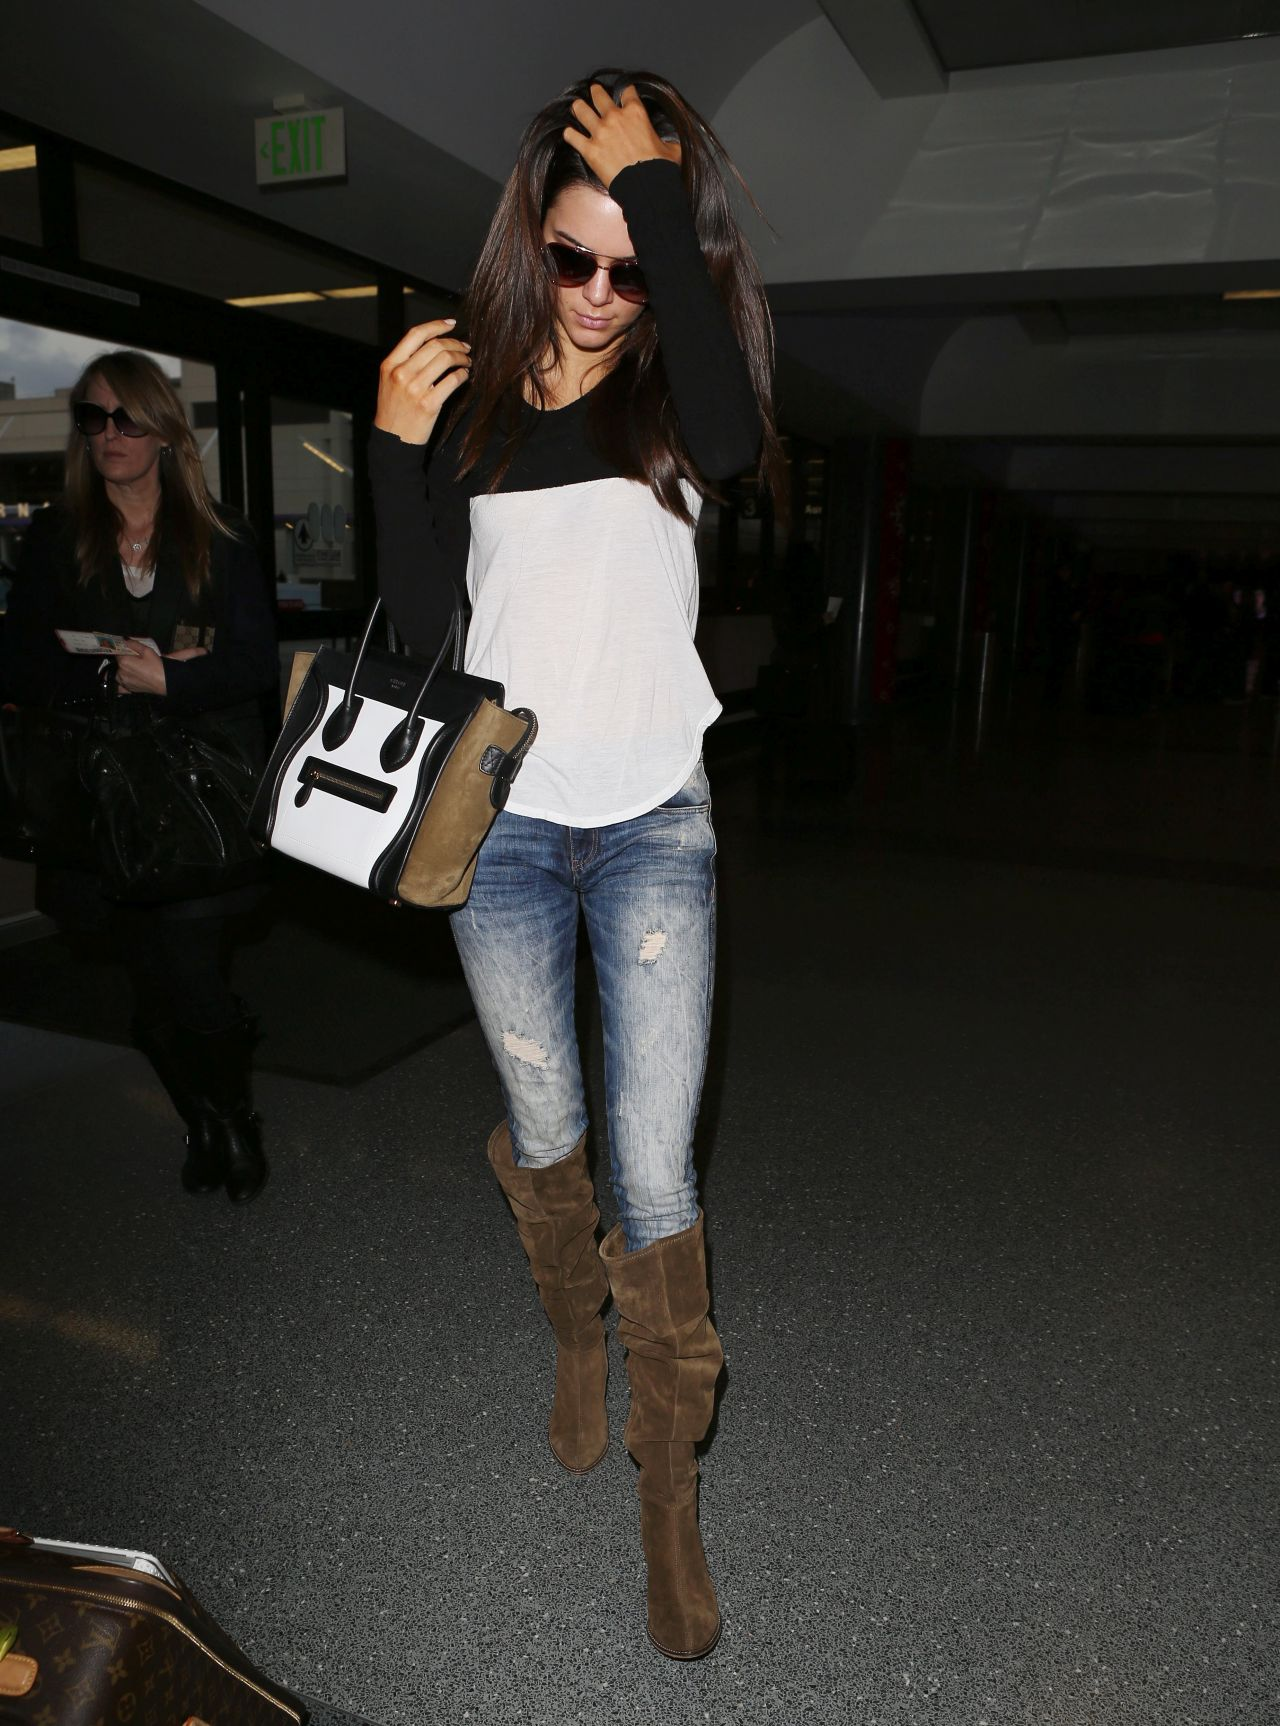 Kendall Jenner In Jeans At LAX Airport November 2013